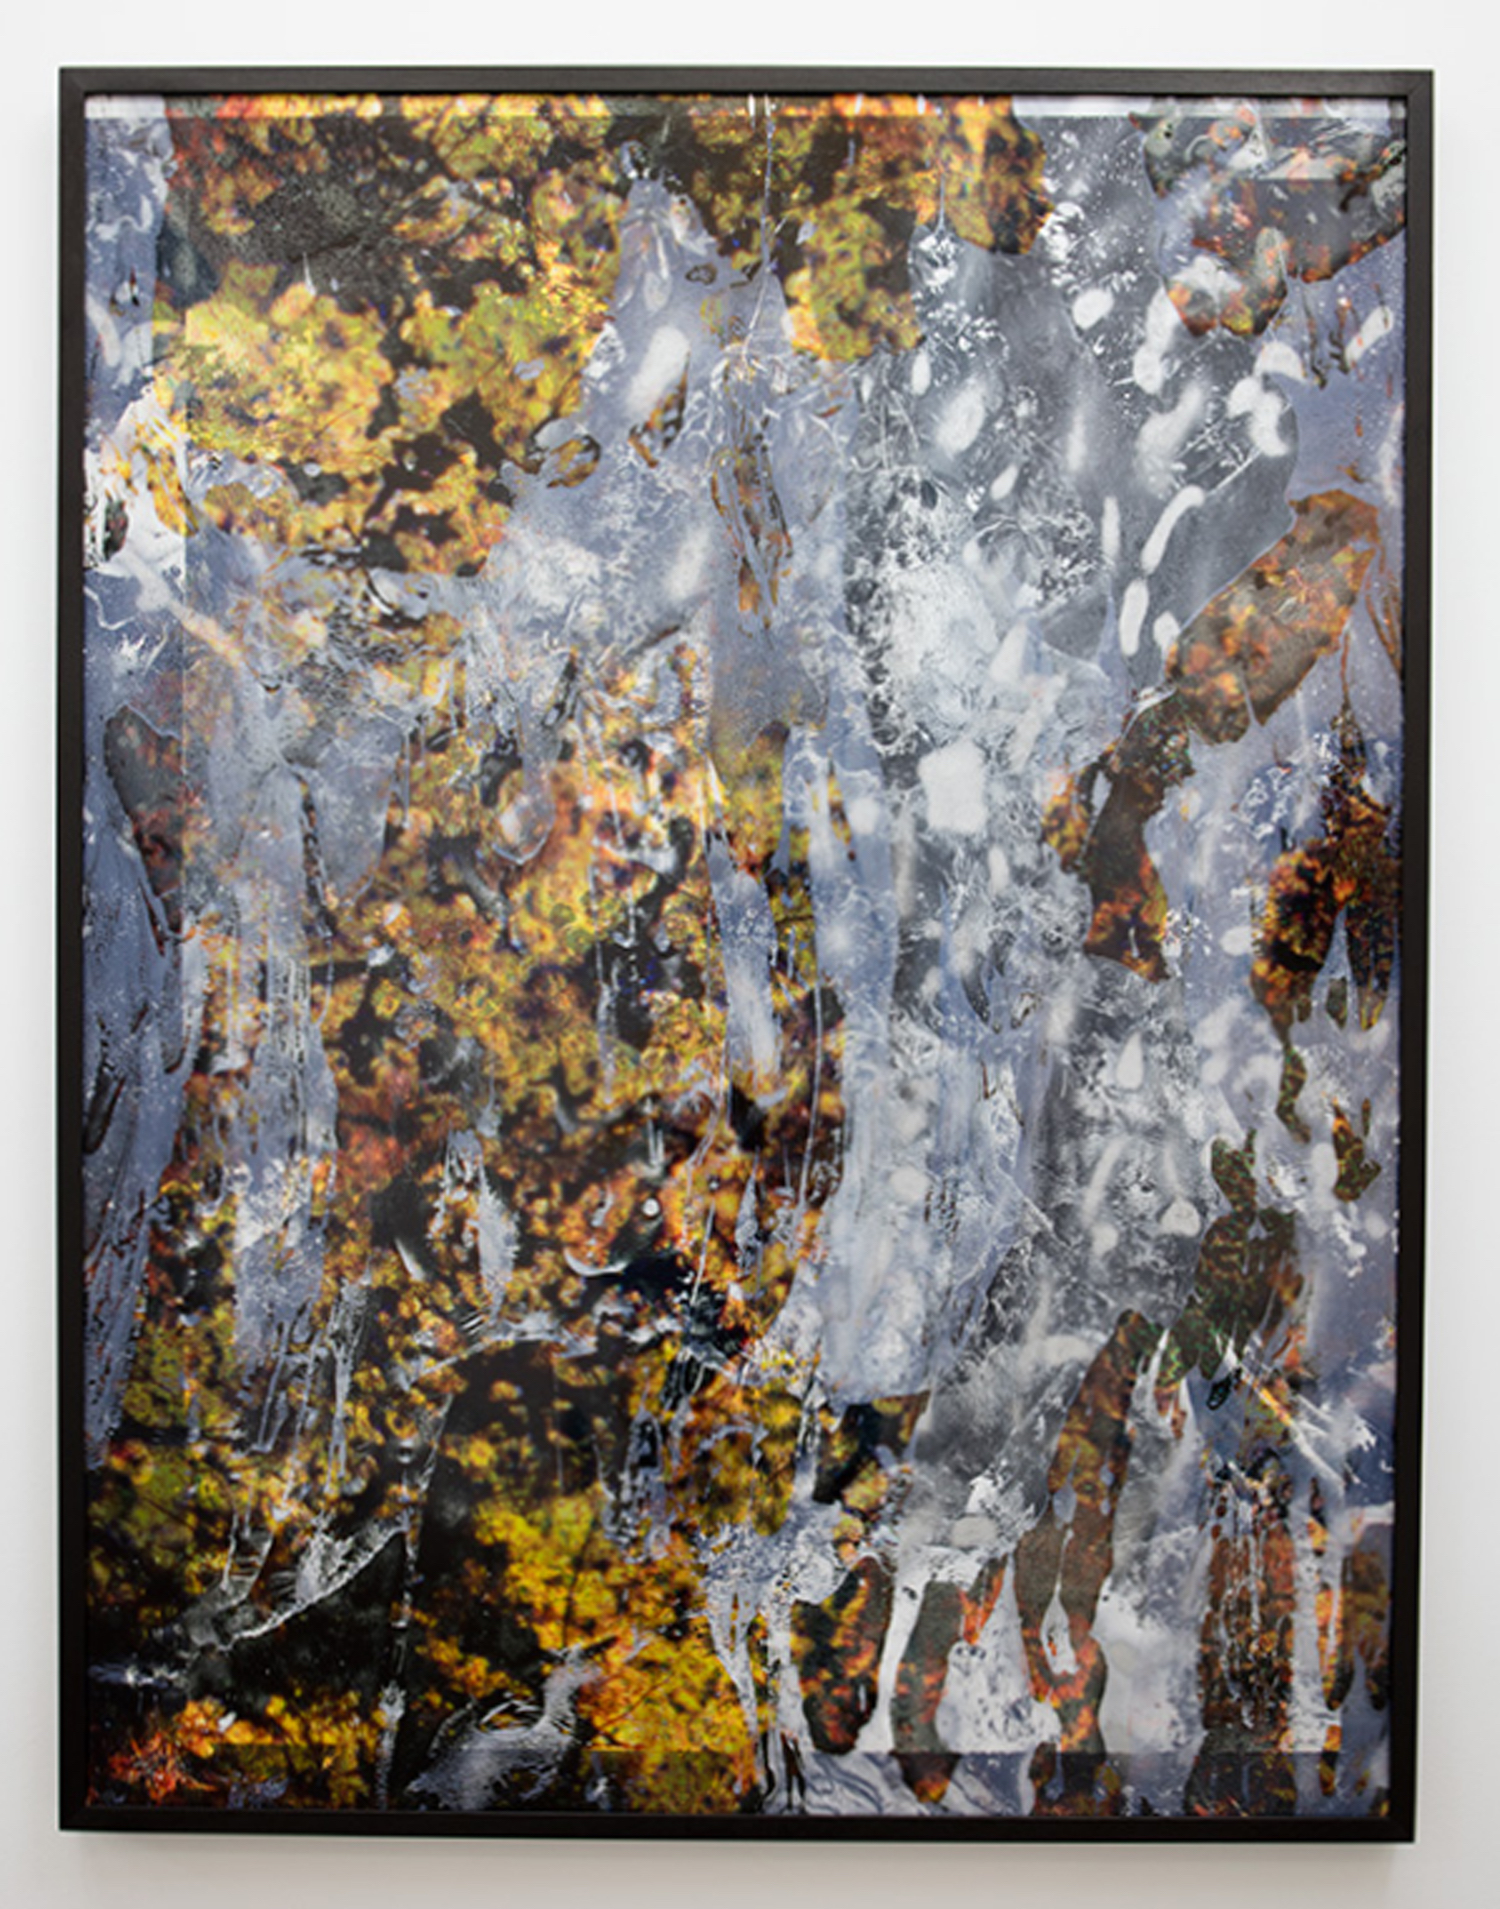 Maya Rochat, A Rock is a River (META TIME), 2017. Dodeka inkjet print on mat paper with hand made spray paint, inkjet print on transparent plastic, with handmade cuts. Framed. 134 x 102 cm.